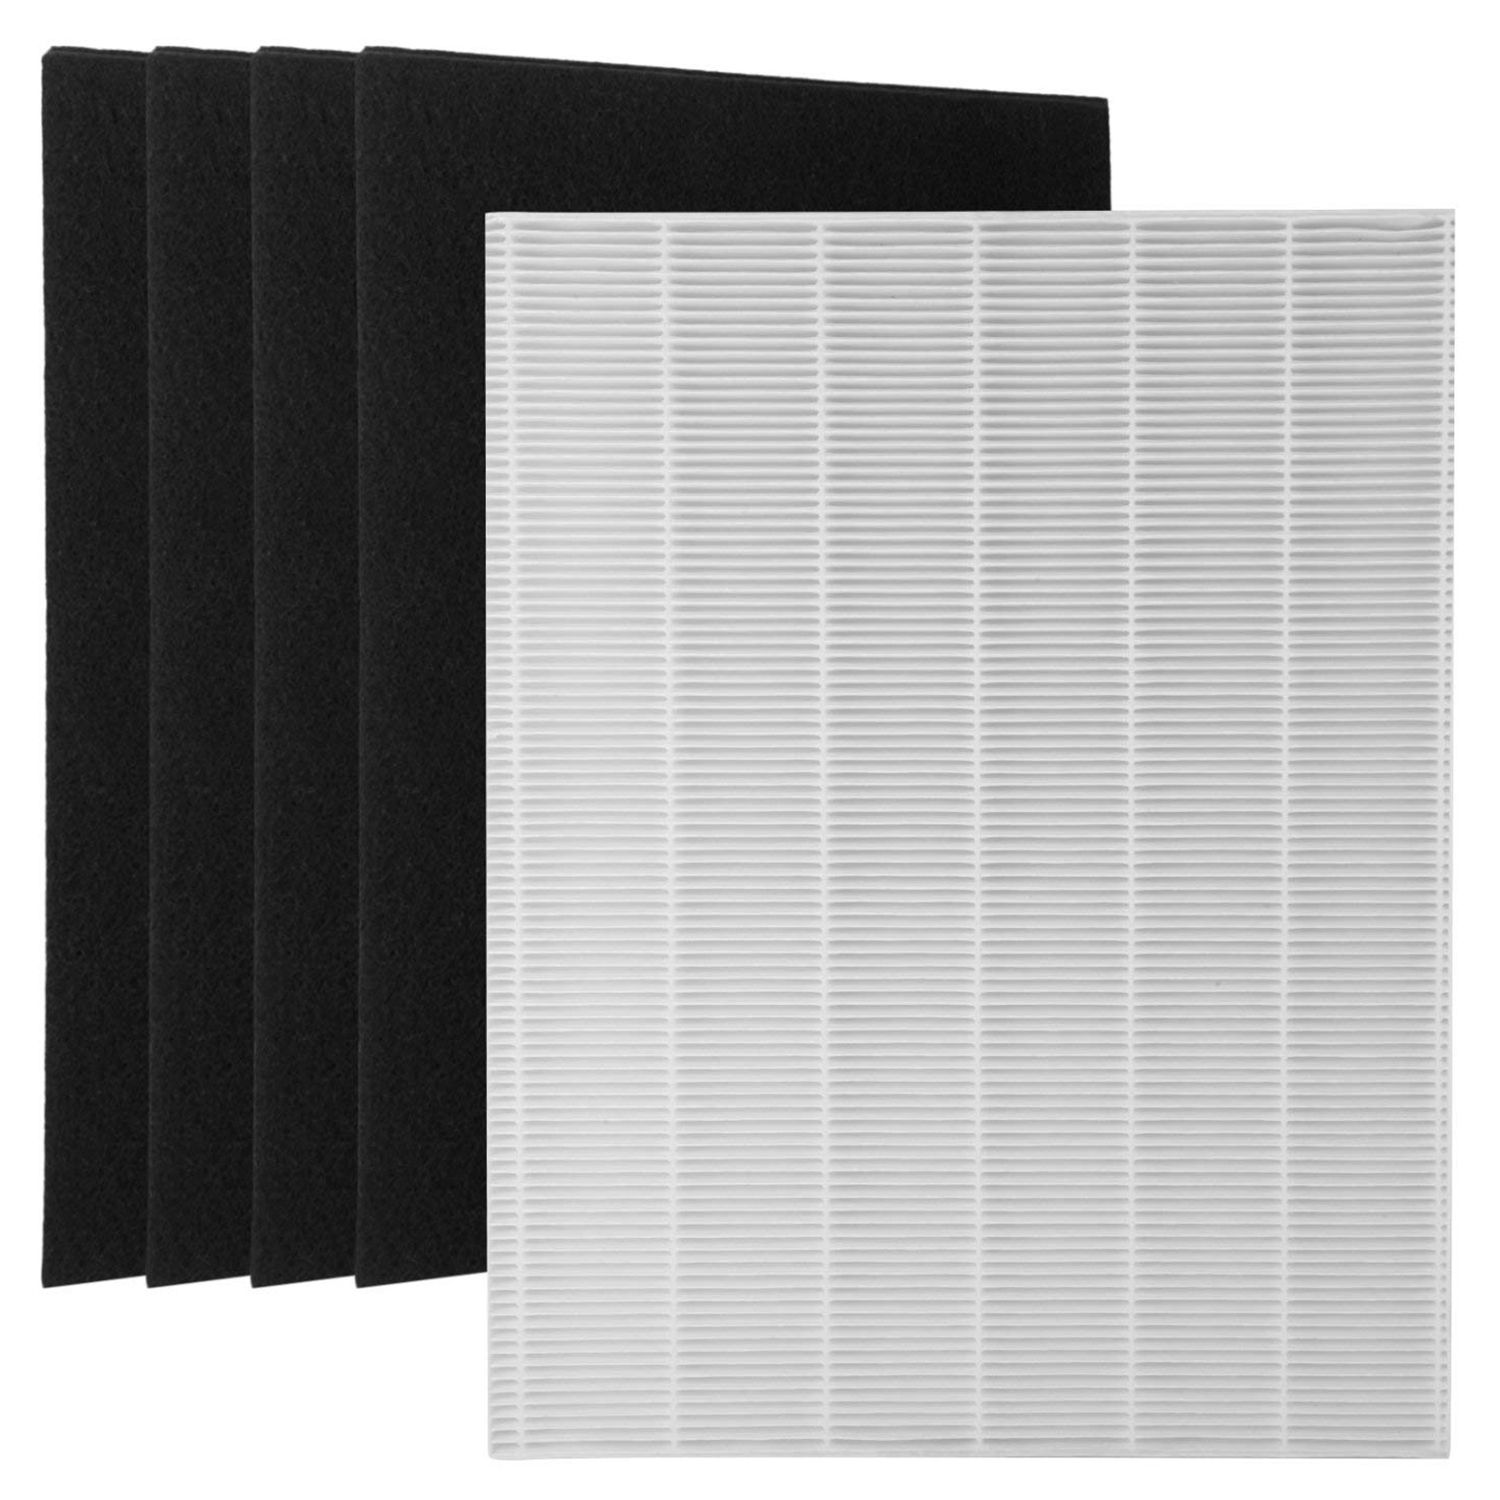 1 True HEPA Filter + 4 Carbon Replacement Filters A 115115 Size 21 for Winix PlasmaWave Air purifier 5300 6300 5300-2 6300-2 P цены онлайн